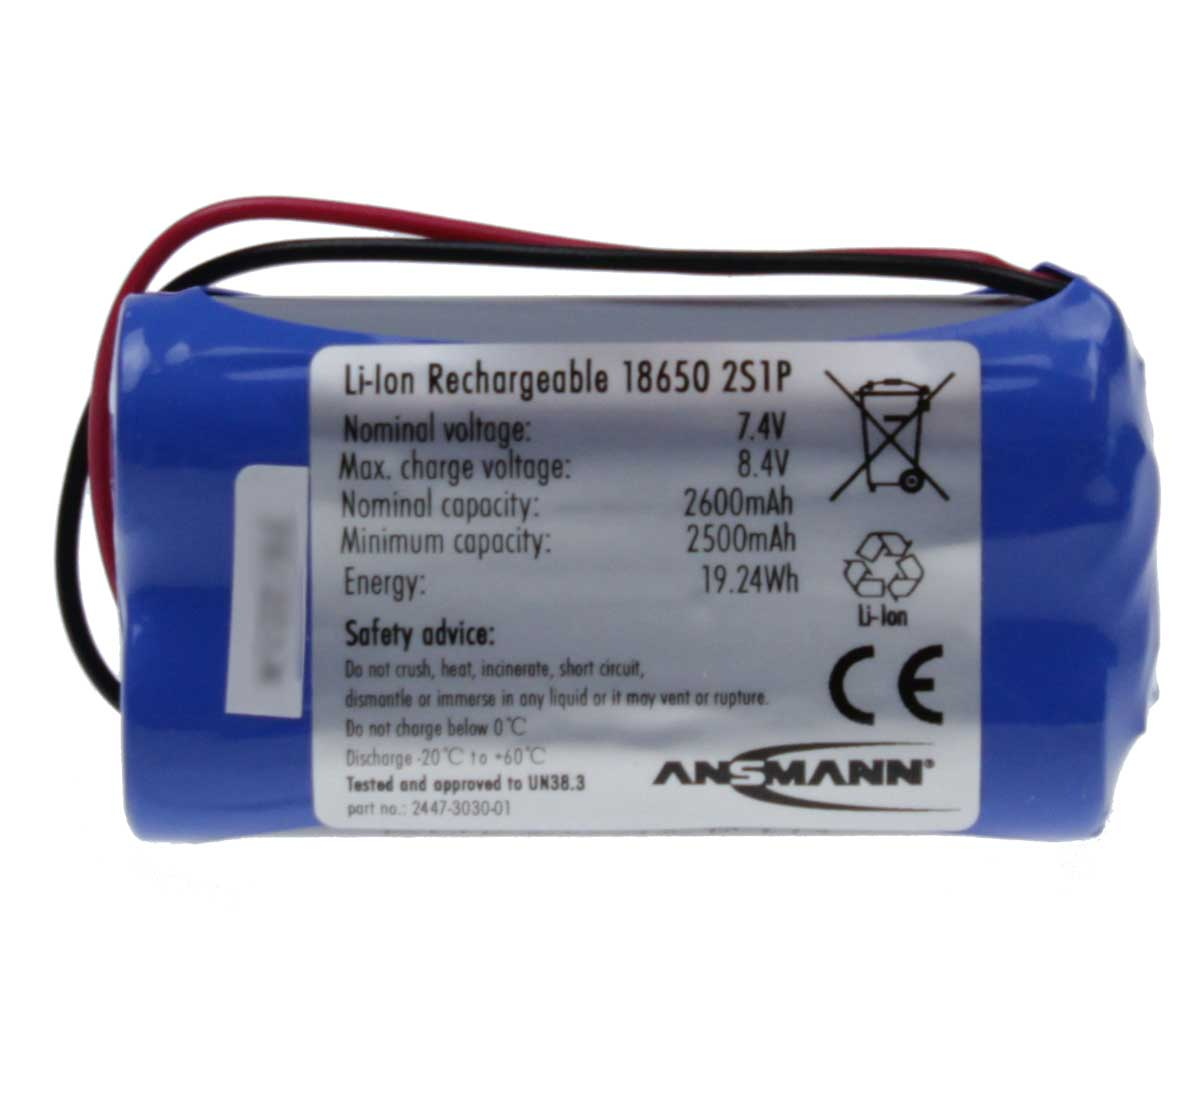 Ansmann Industrial 2S1P 7.4V 2600mAh Rechargeable Li-ion Battery Pack